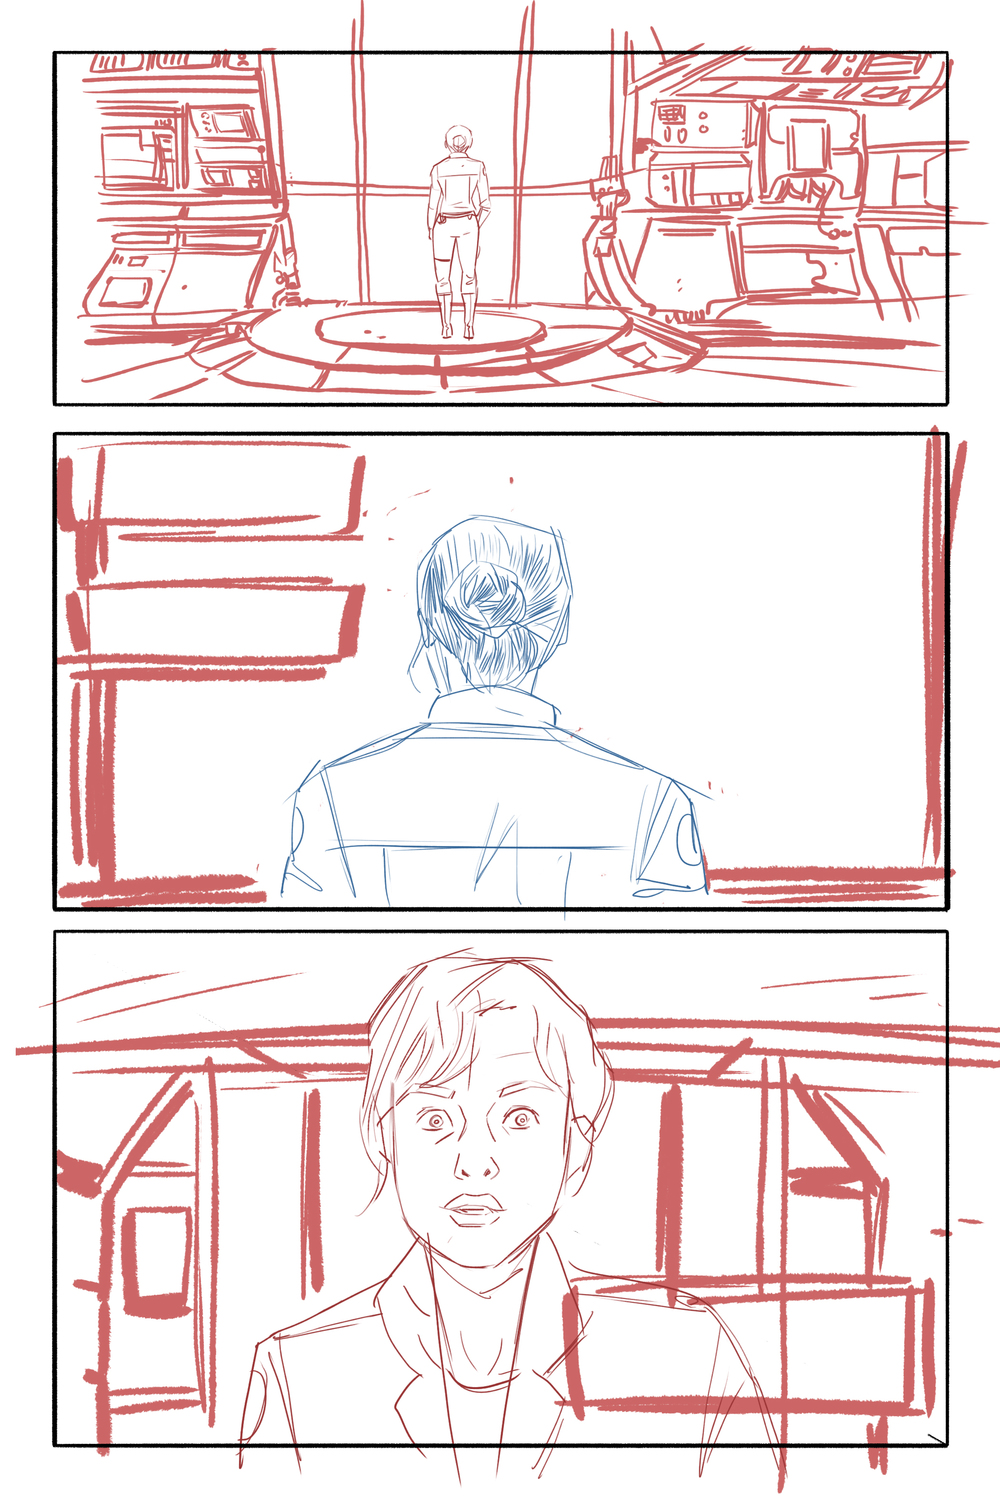 Rough layouts for the actual comic. I love that horrified expression on Alice's face in the third panel.